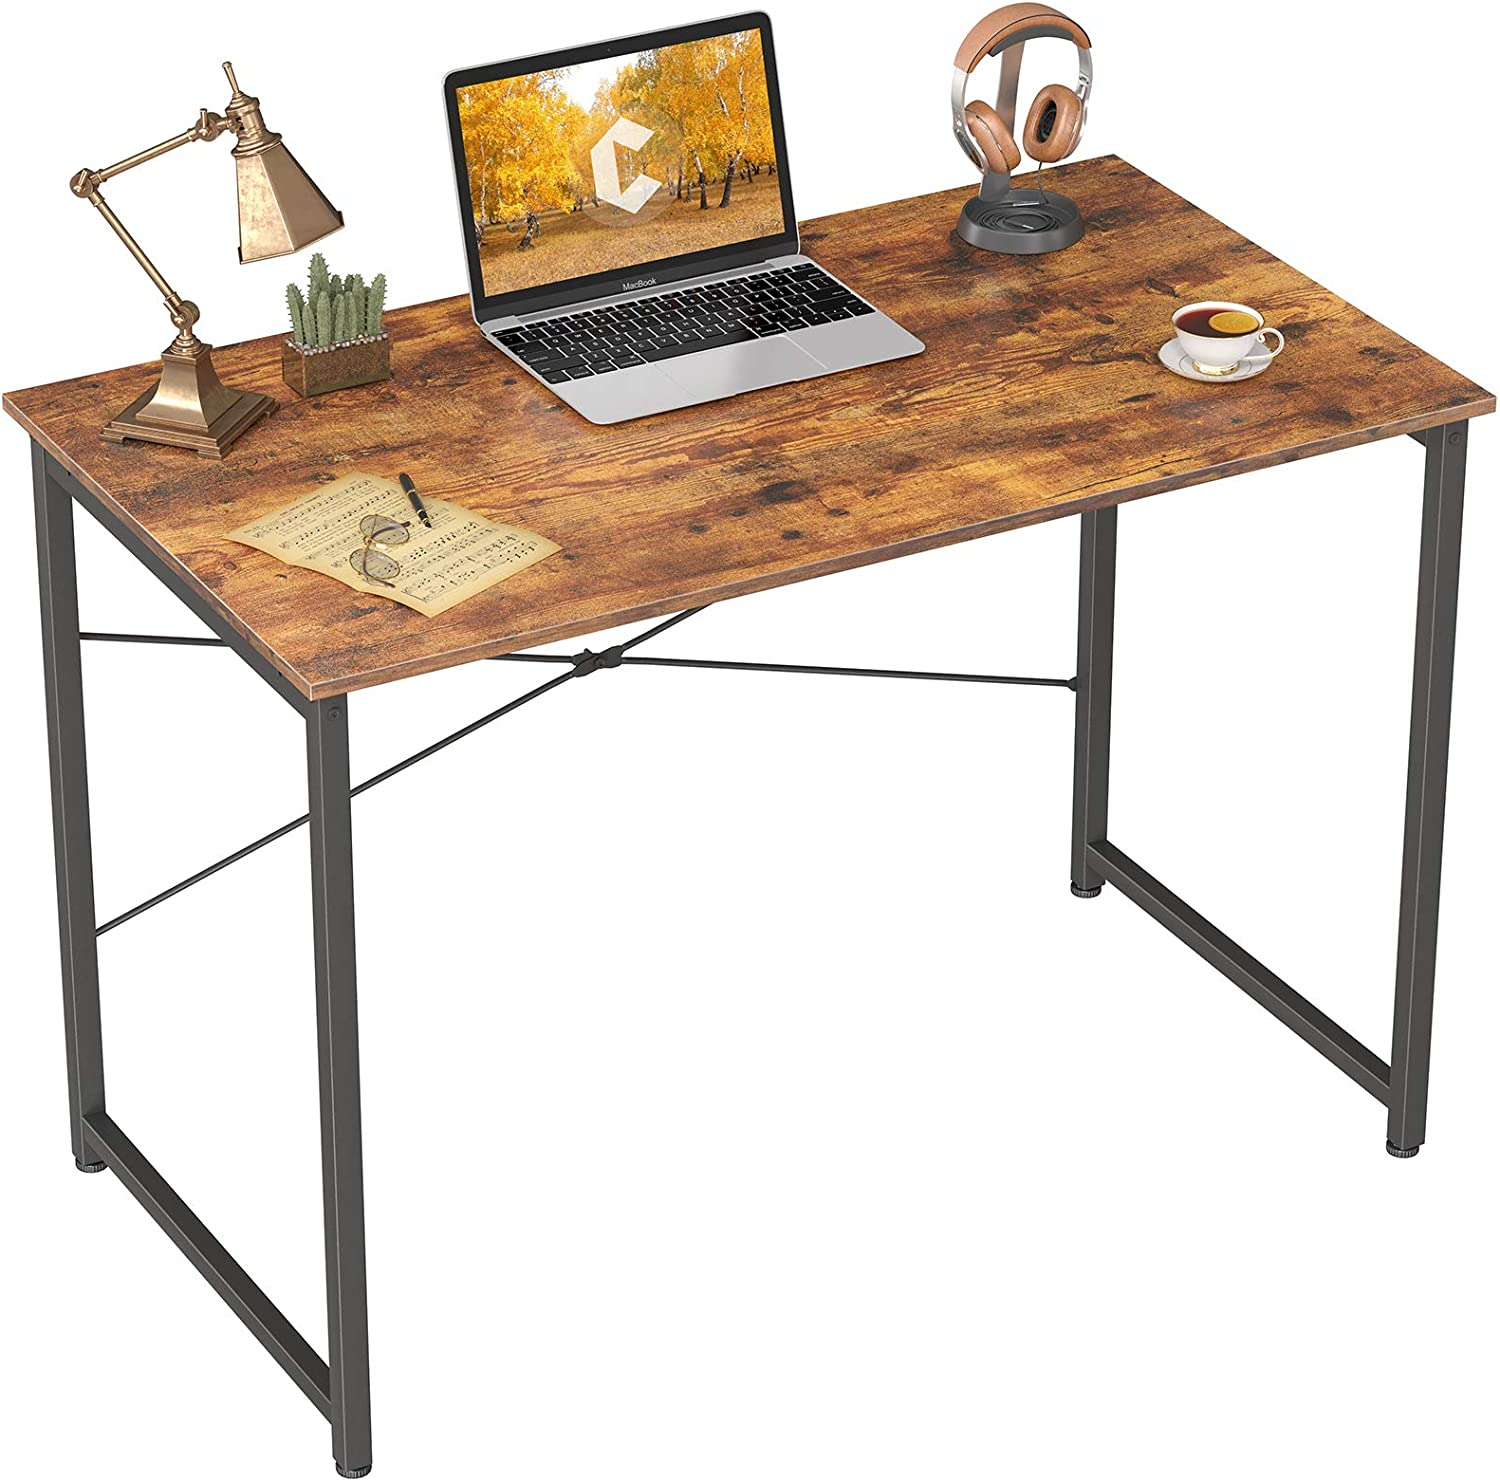 """Cubicubi Computer Desk 32"""" Home Office Laptop Desk Study Writing Table, Modern Simple Style, Rustic Brown"""